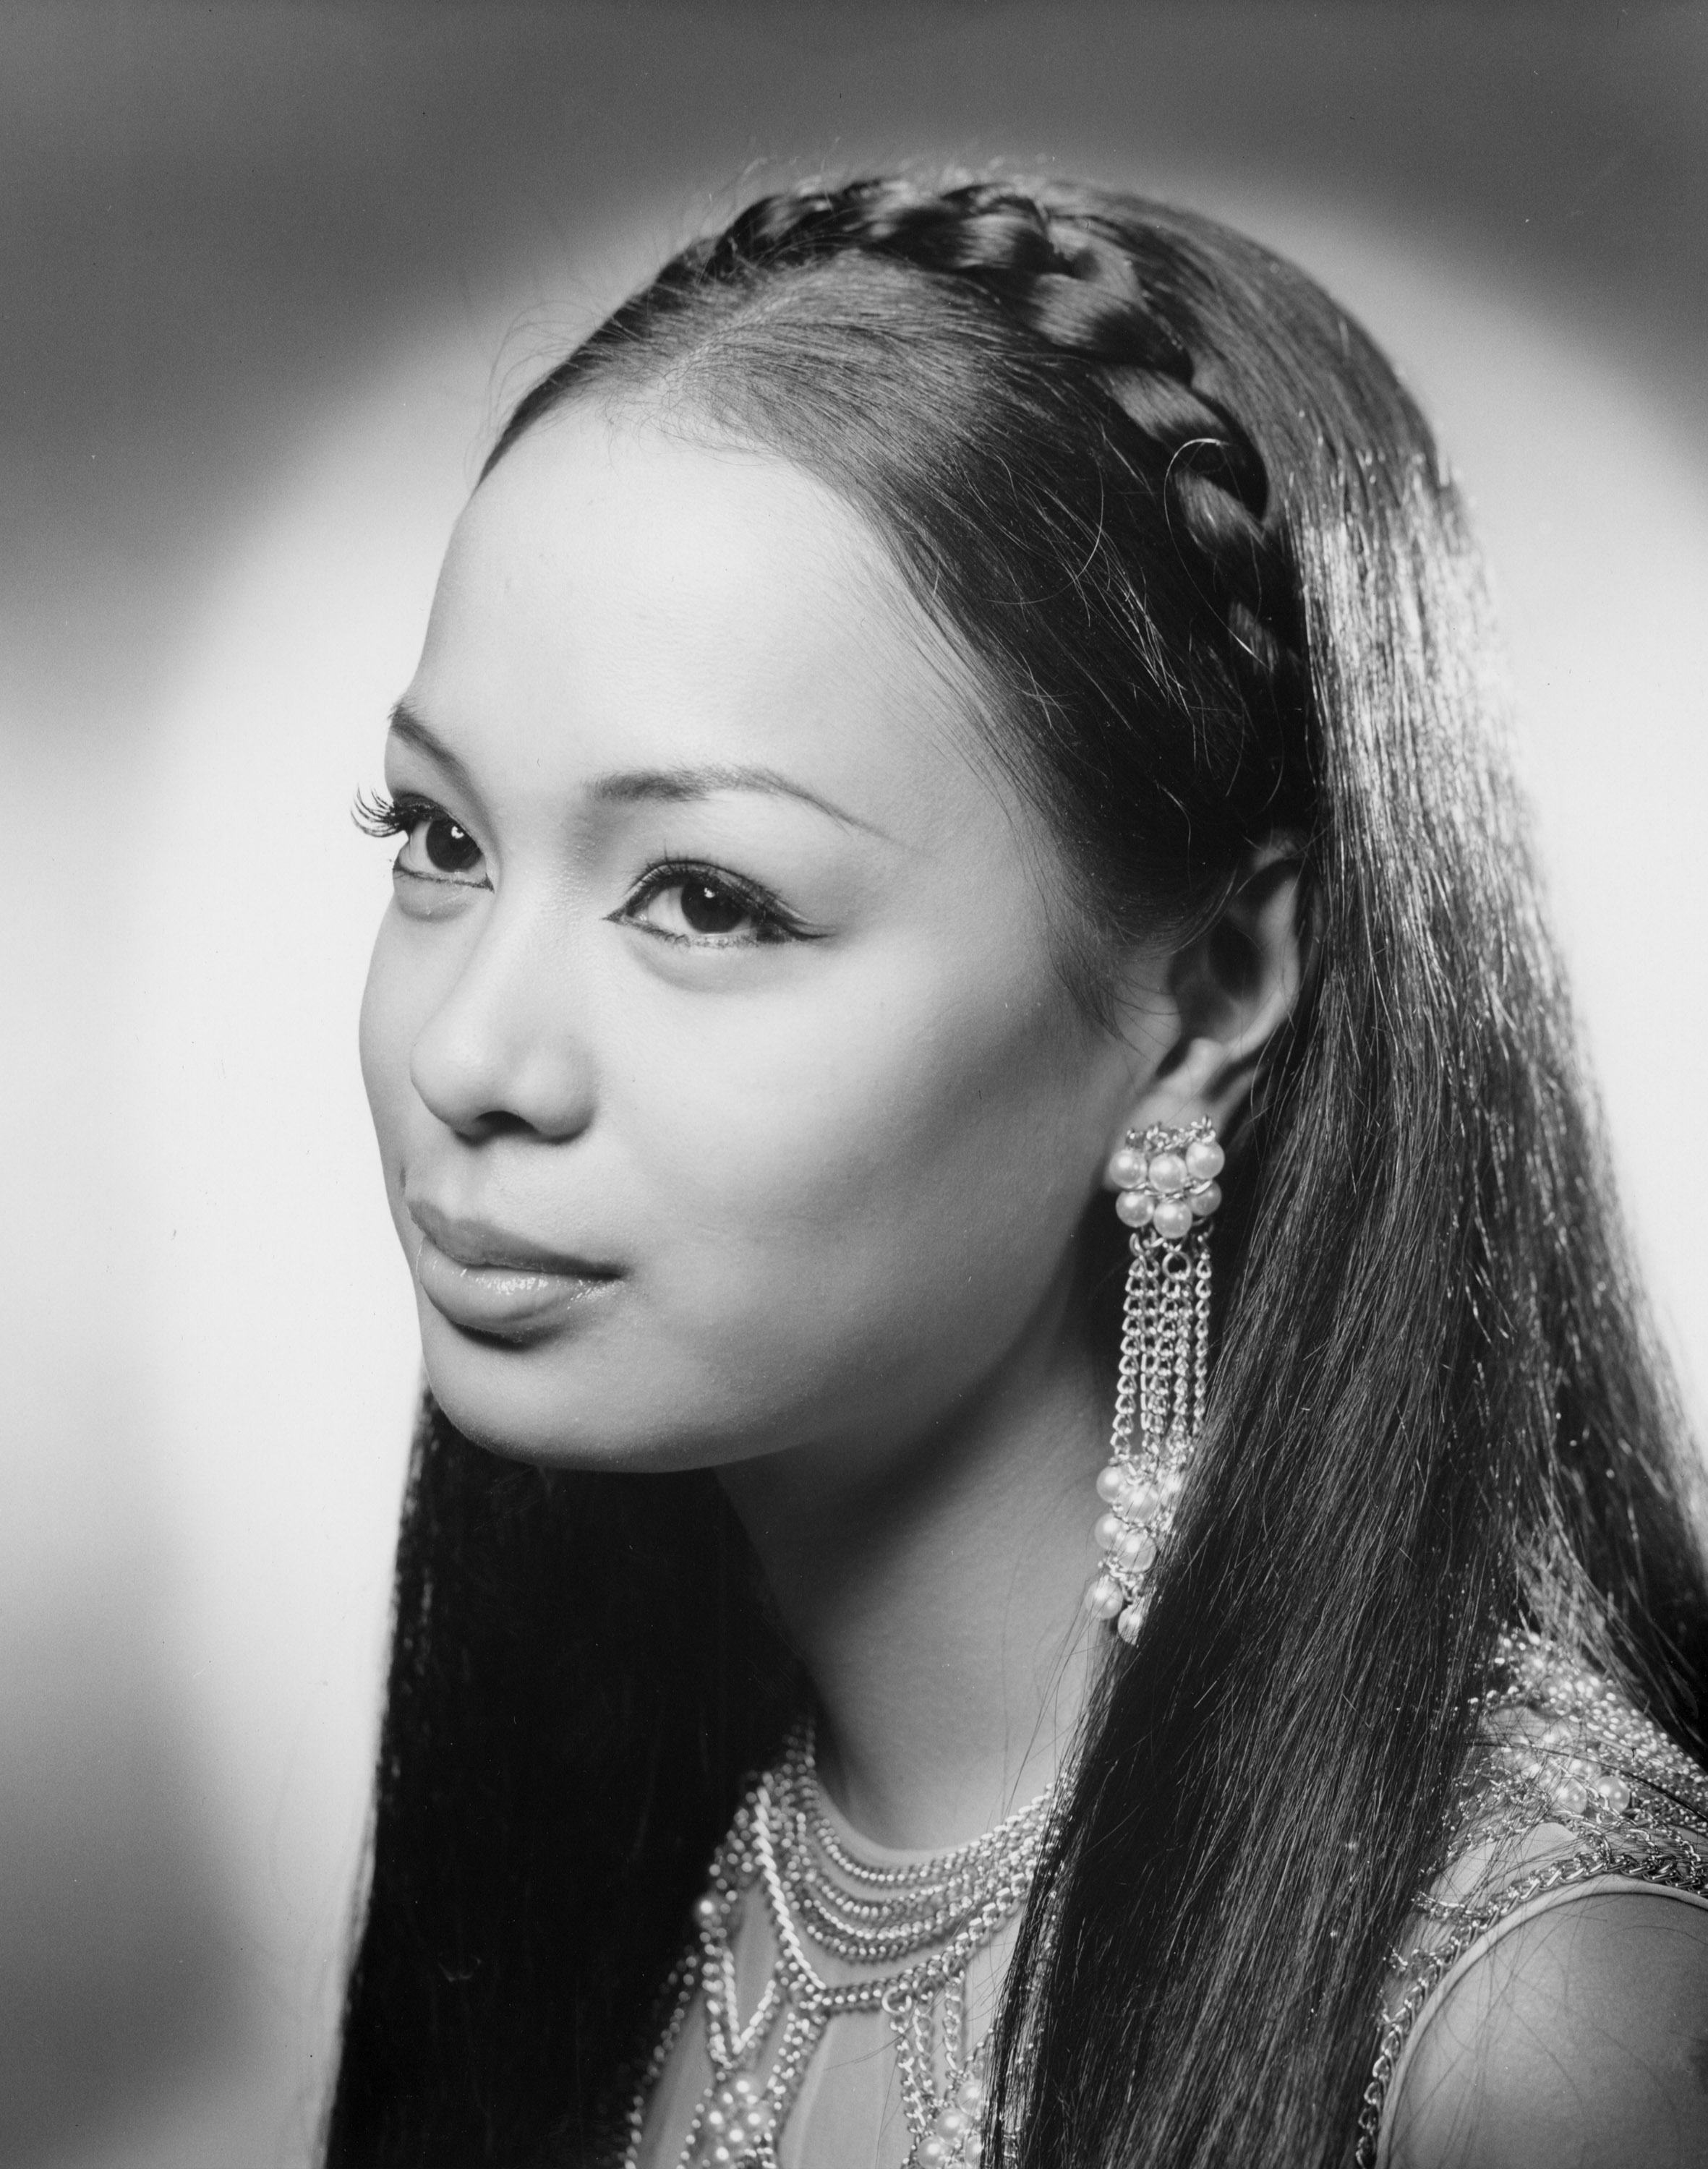 LONG LIVE QUEEN GLORIA. Gloria Diaz in a profile shot for Miss Universe in 1969. Photo from Miss Universe Organization